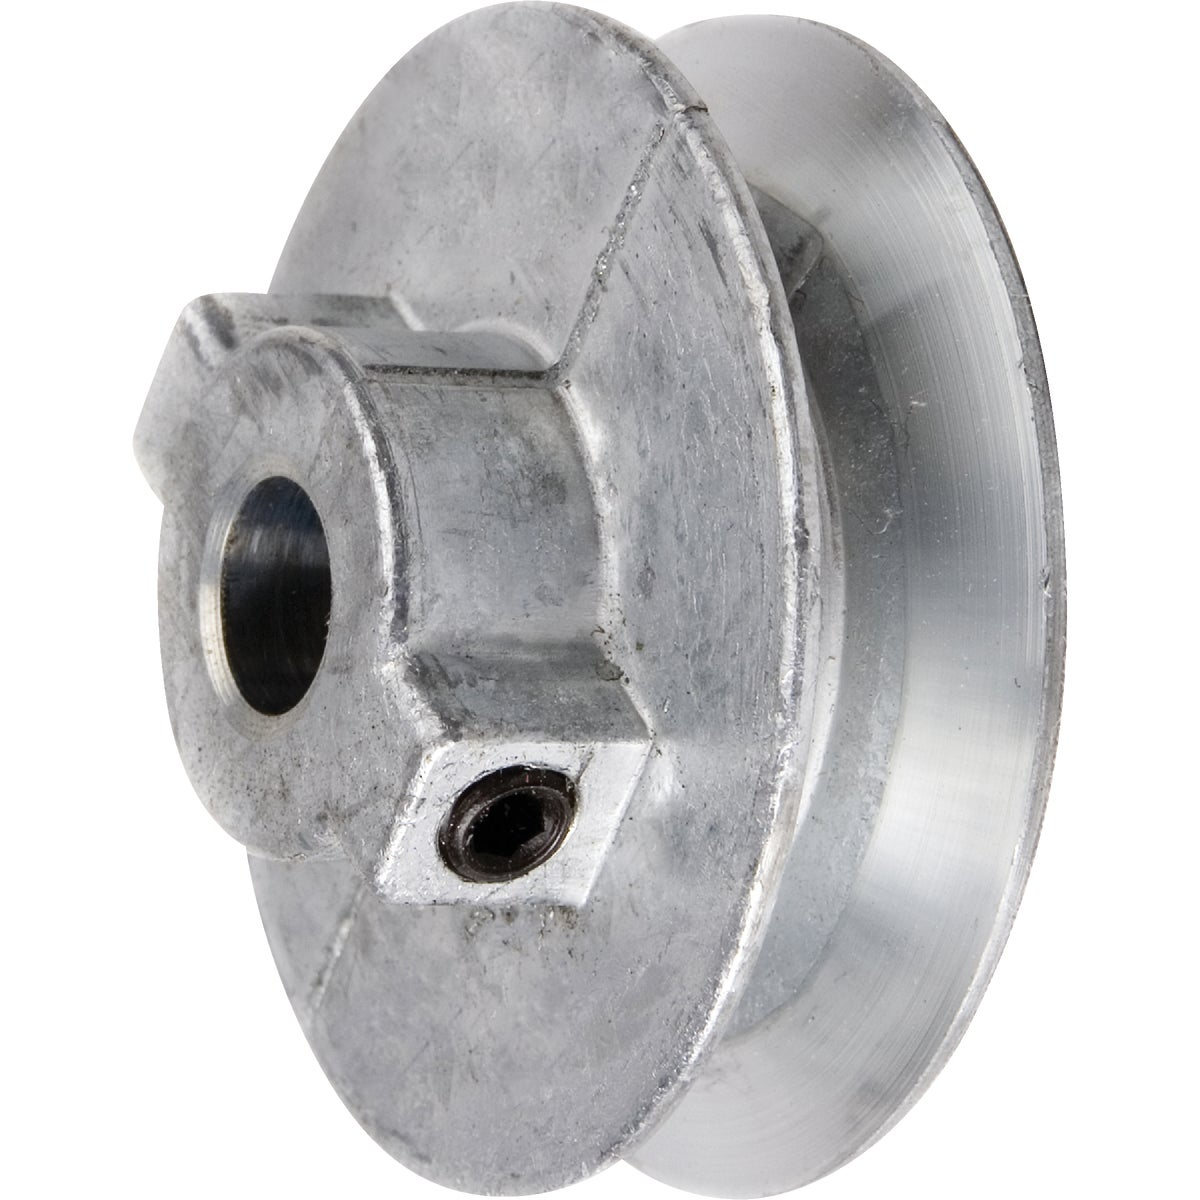 2X1/2 PULLEY - 200A5 by Chicago Die Casting